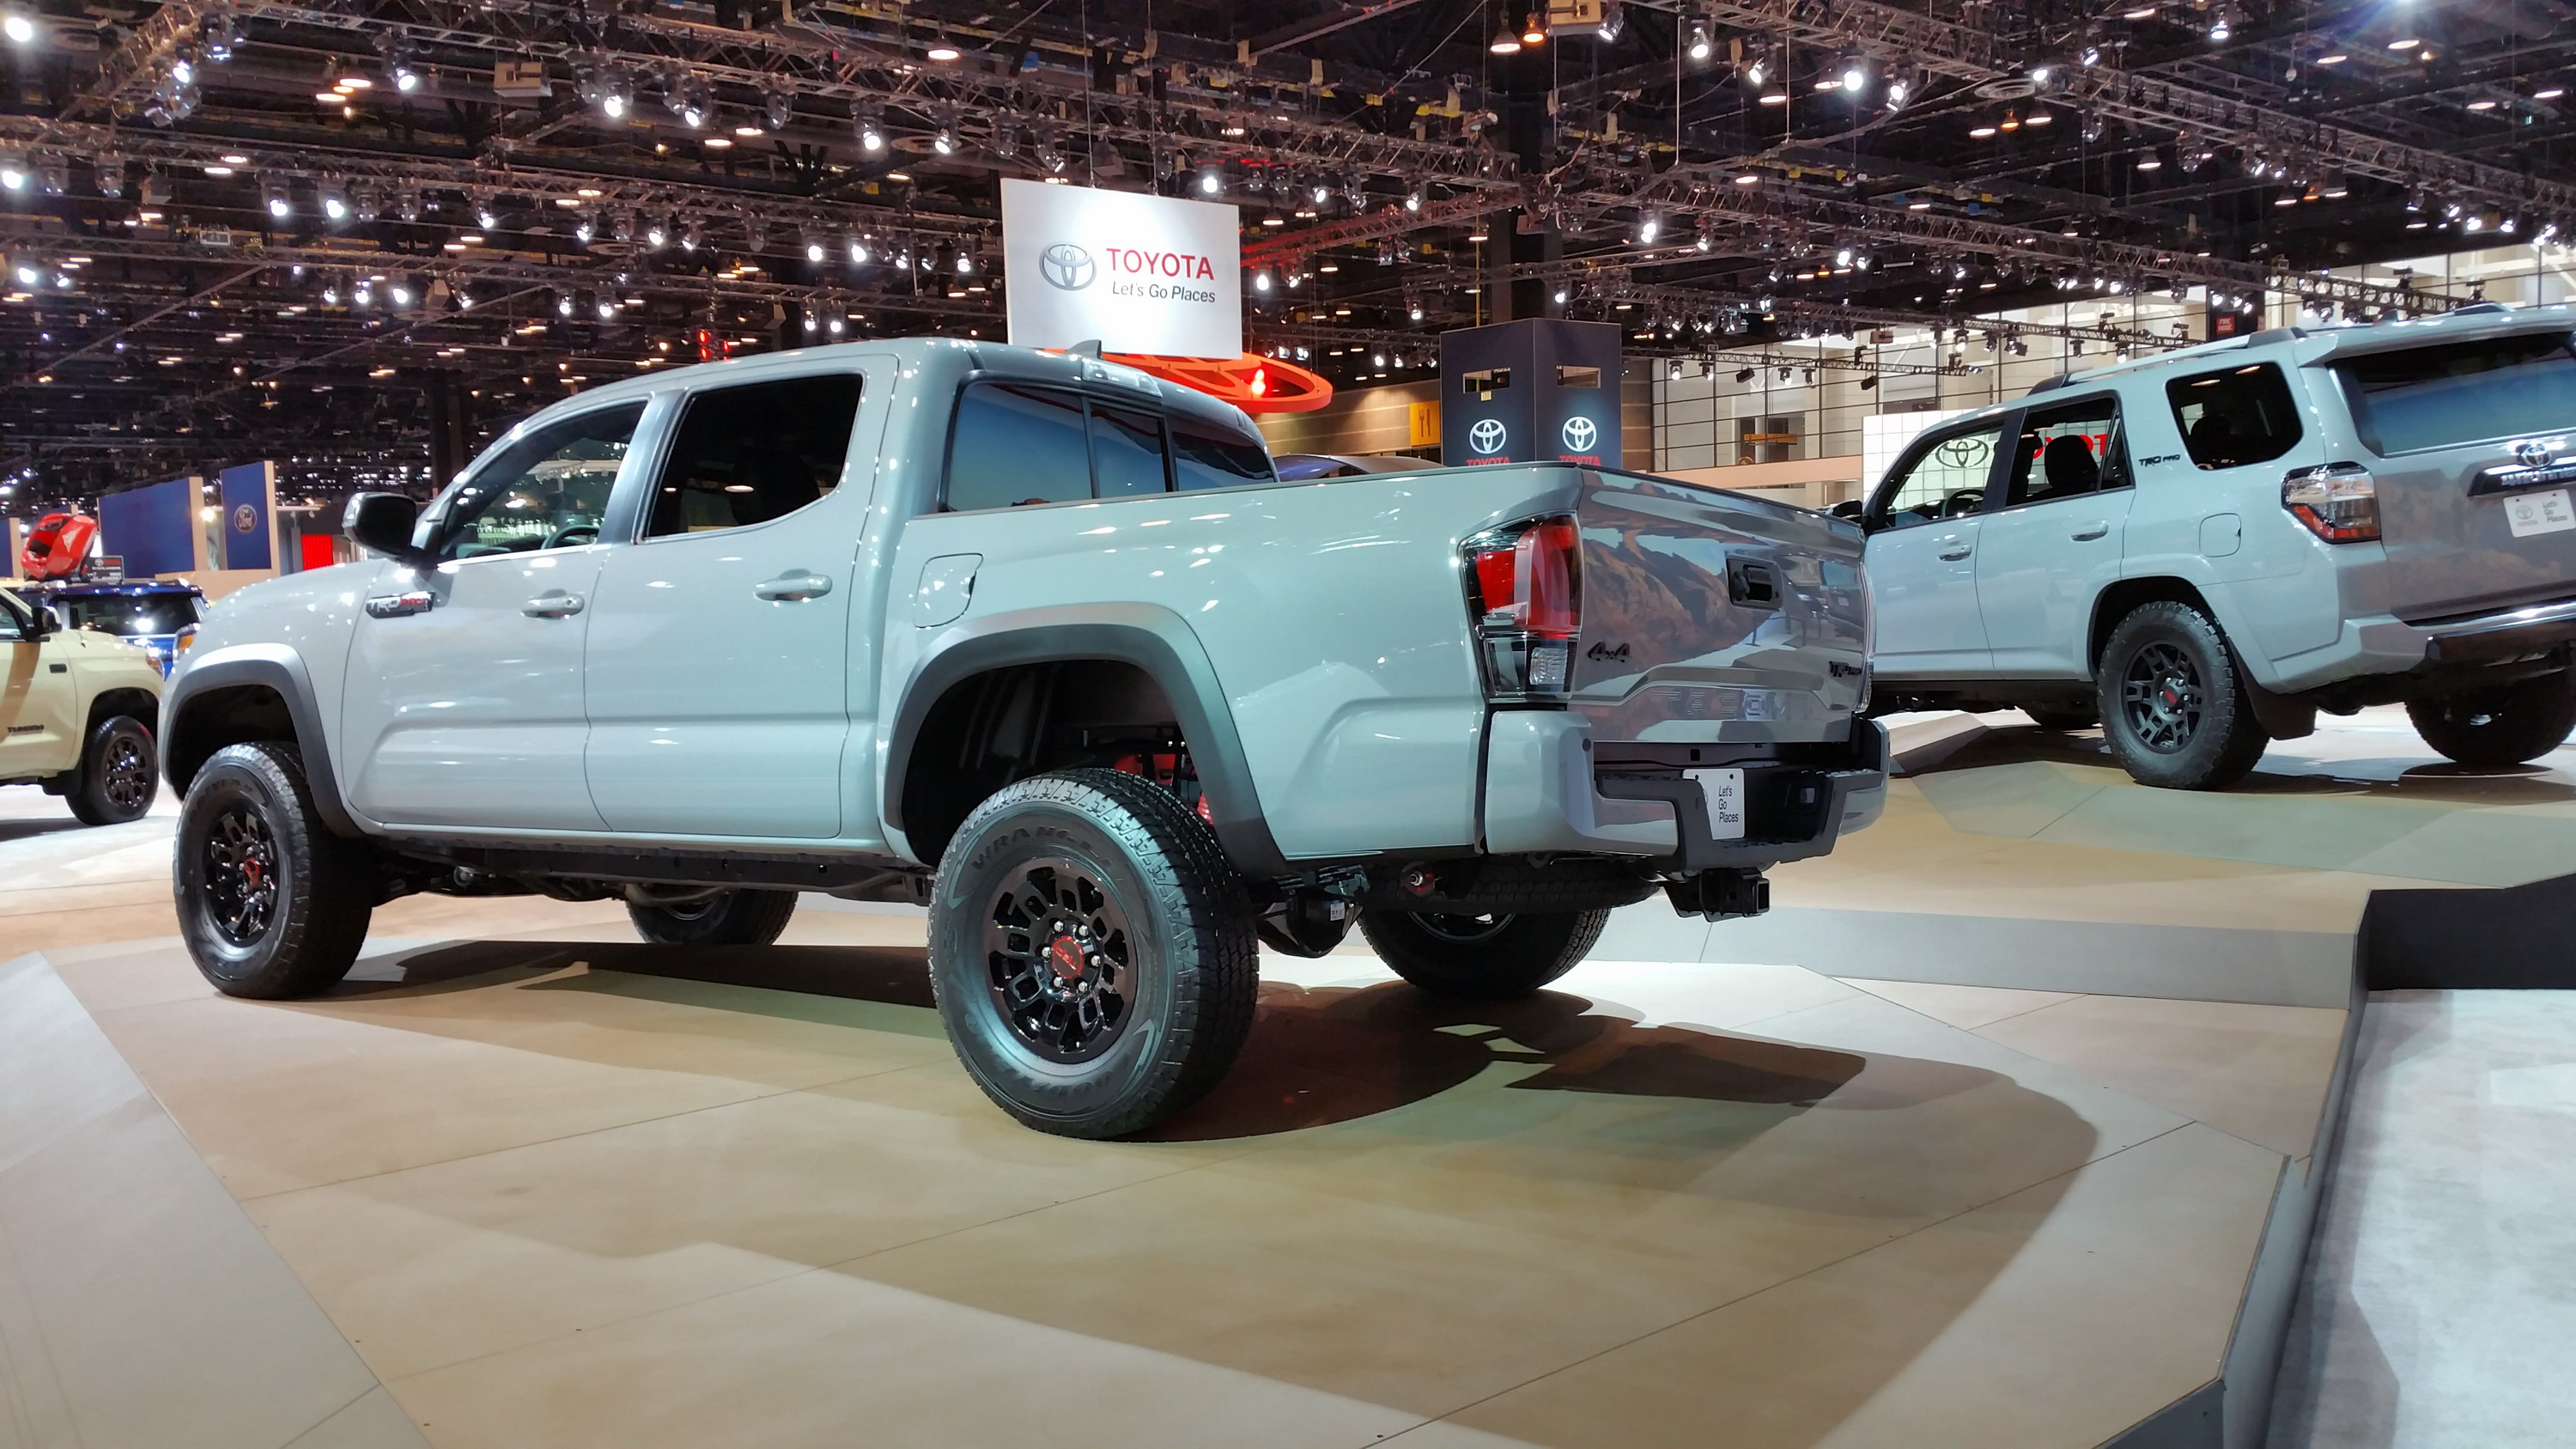 2017 toyota tacoma trd pro picture 666063 truck review top speed. Black Bedroom Furniture Sets. Home Design Ideas